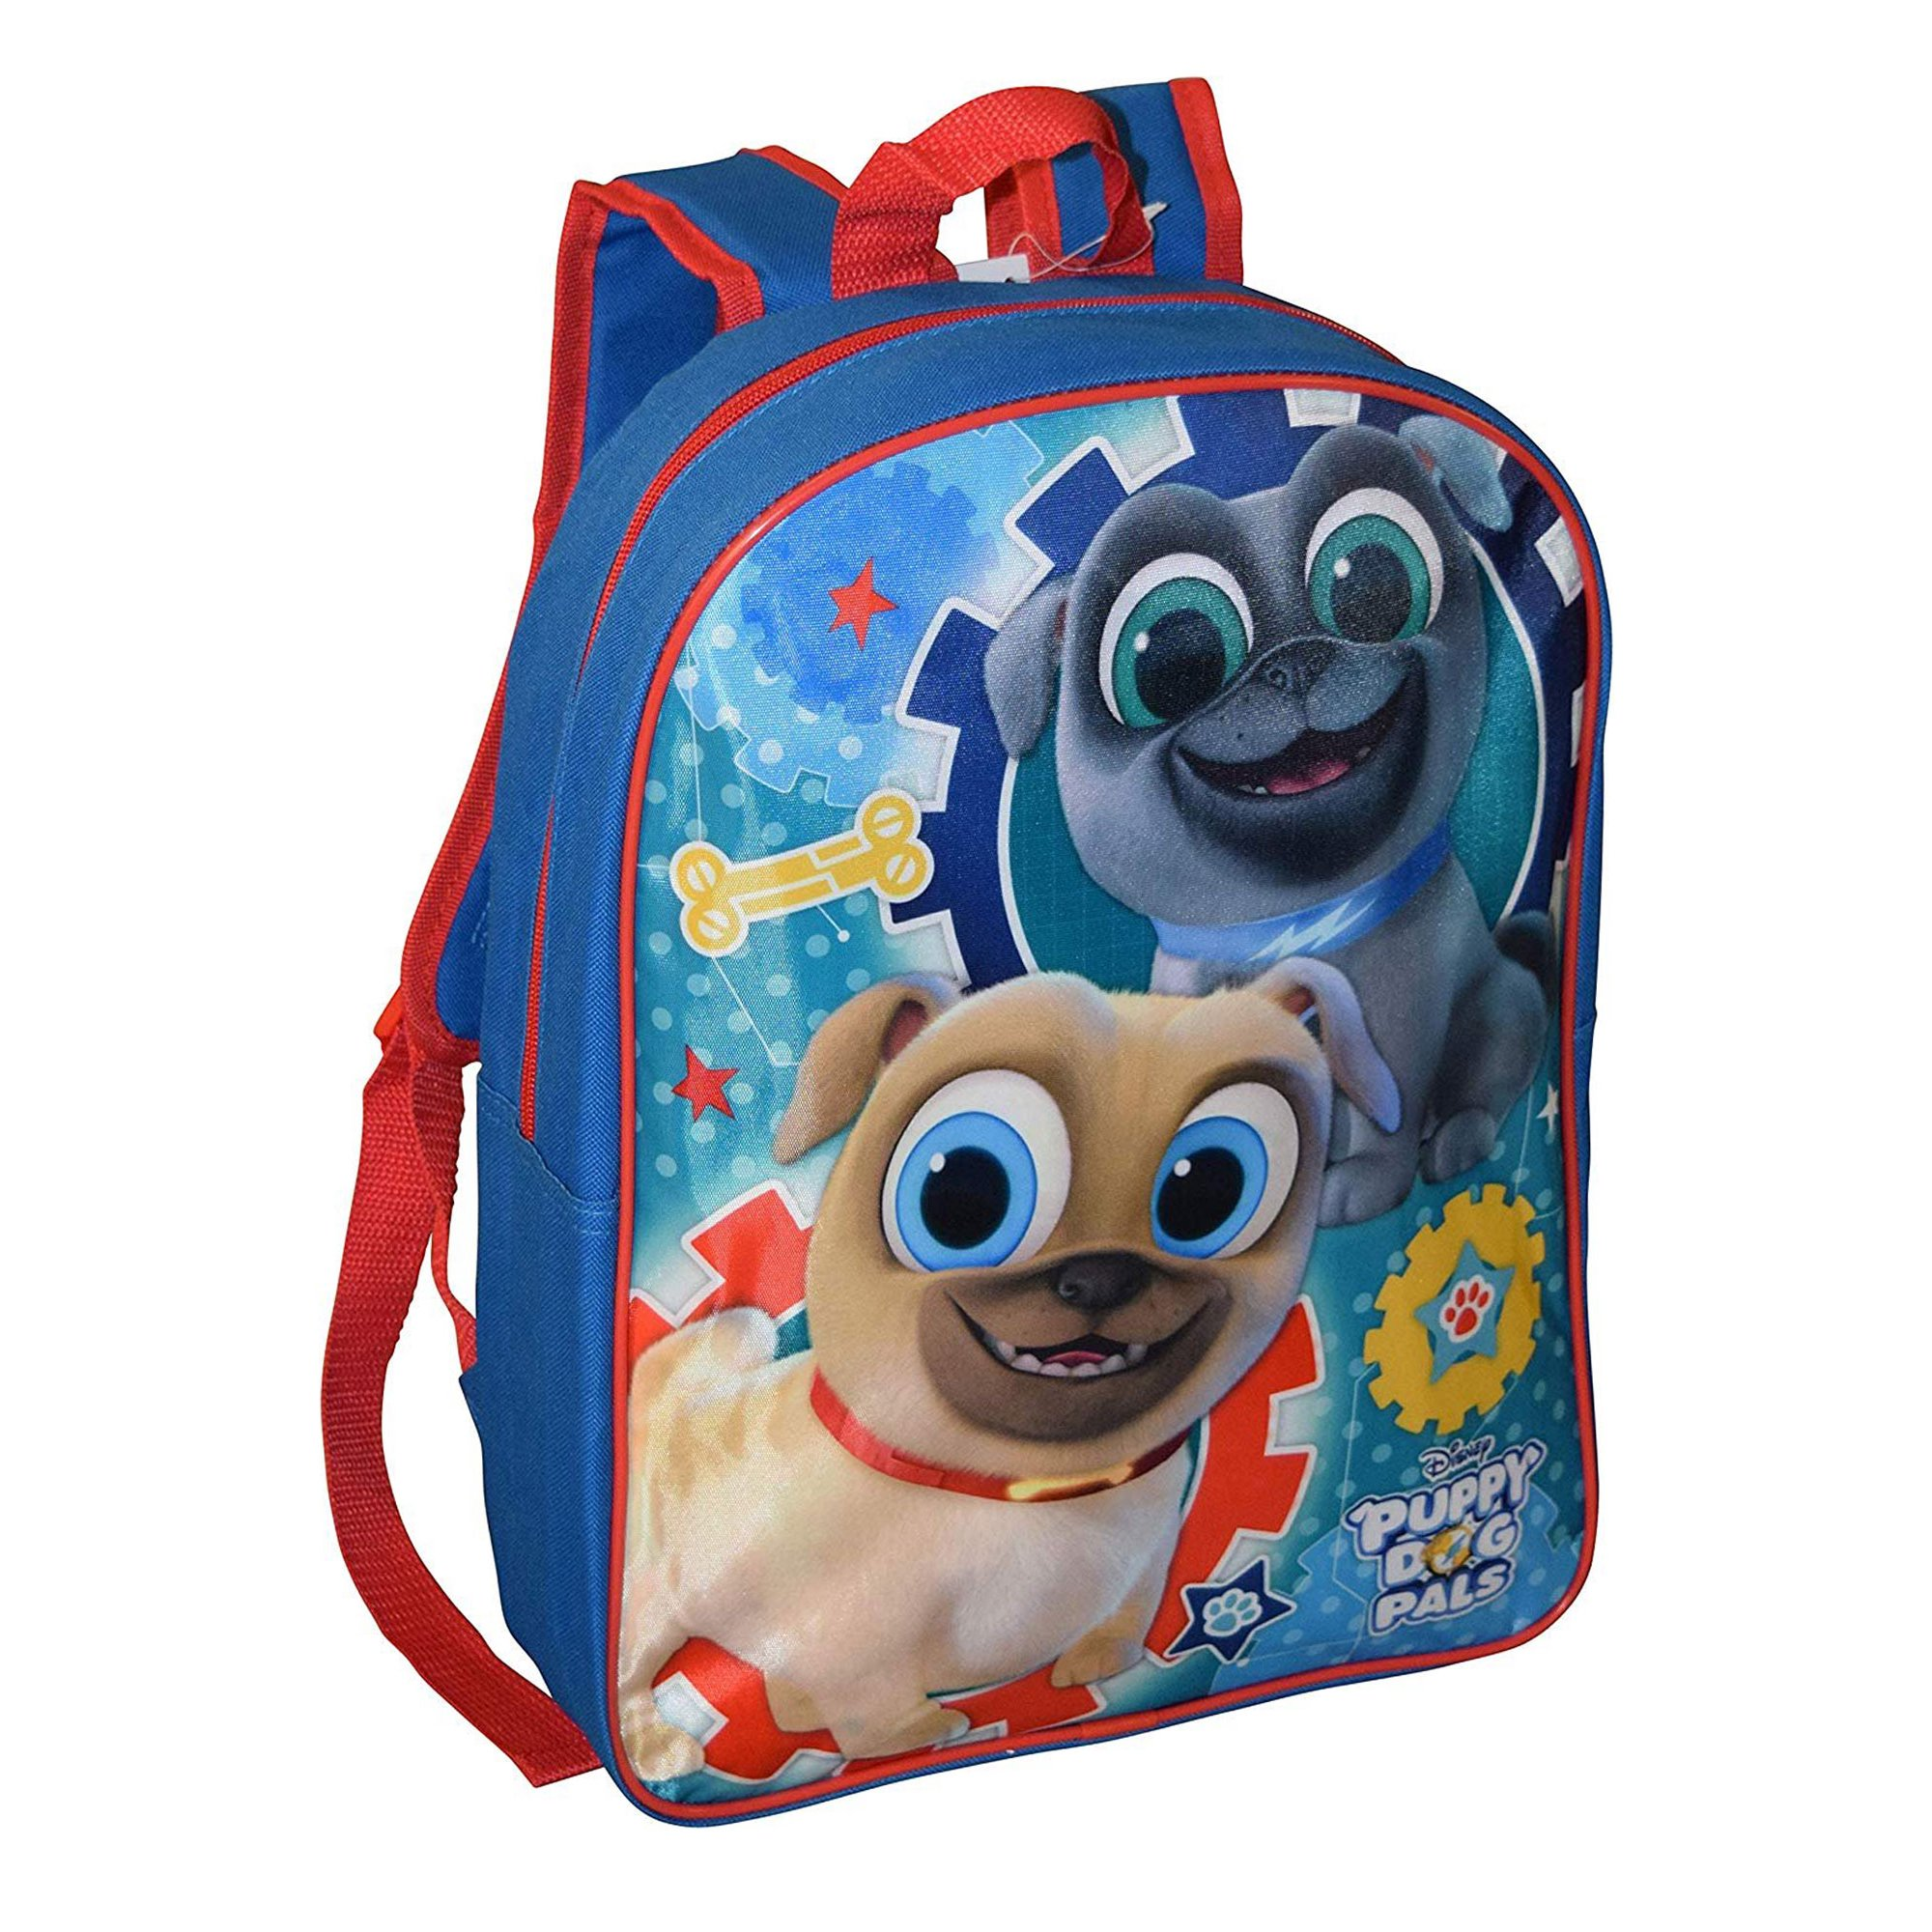 2b03f60d31 Kids Puppy Dog Pals Backpack 12